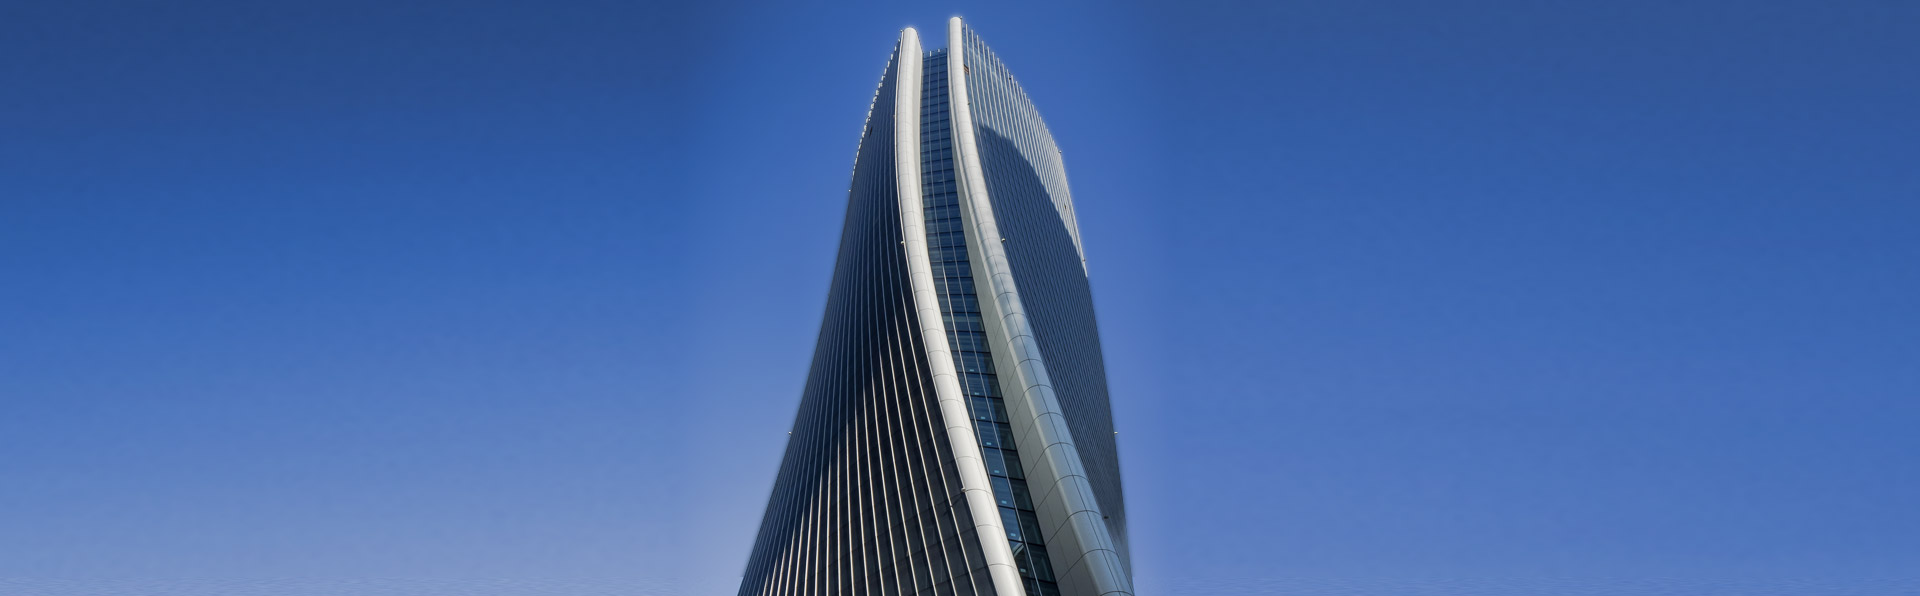 cmb-construction-torre-hadid-tower